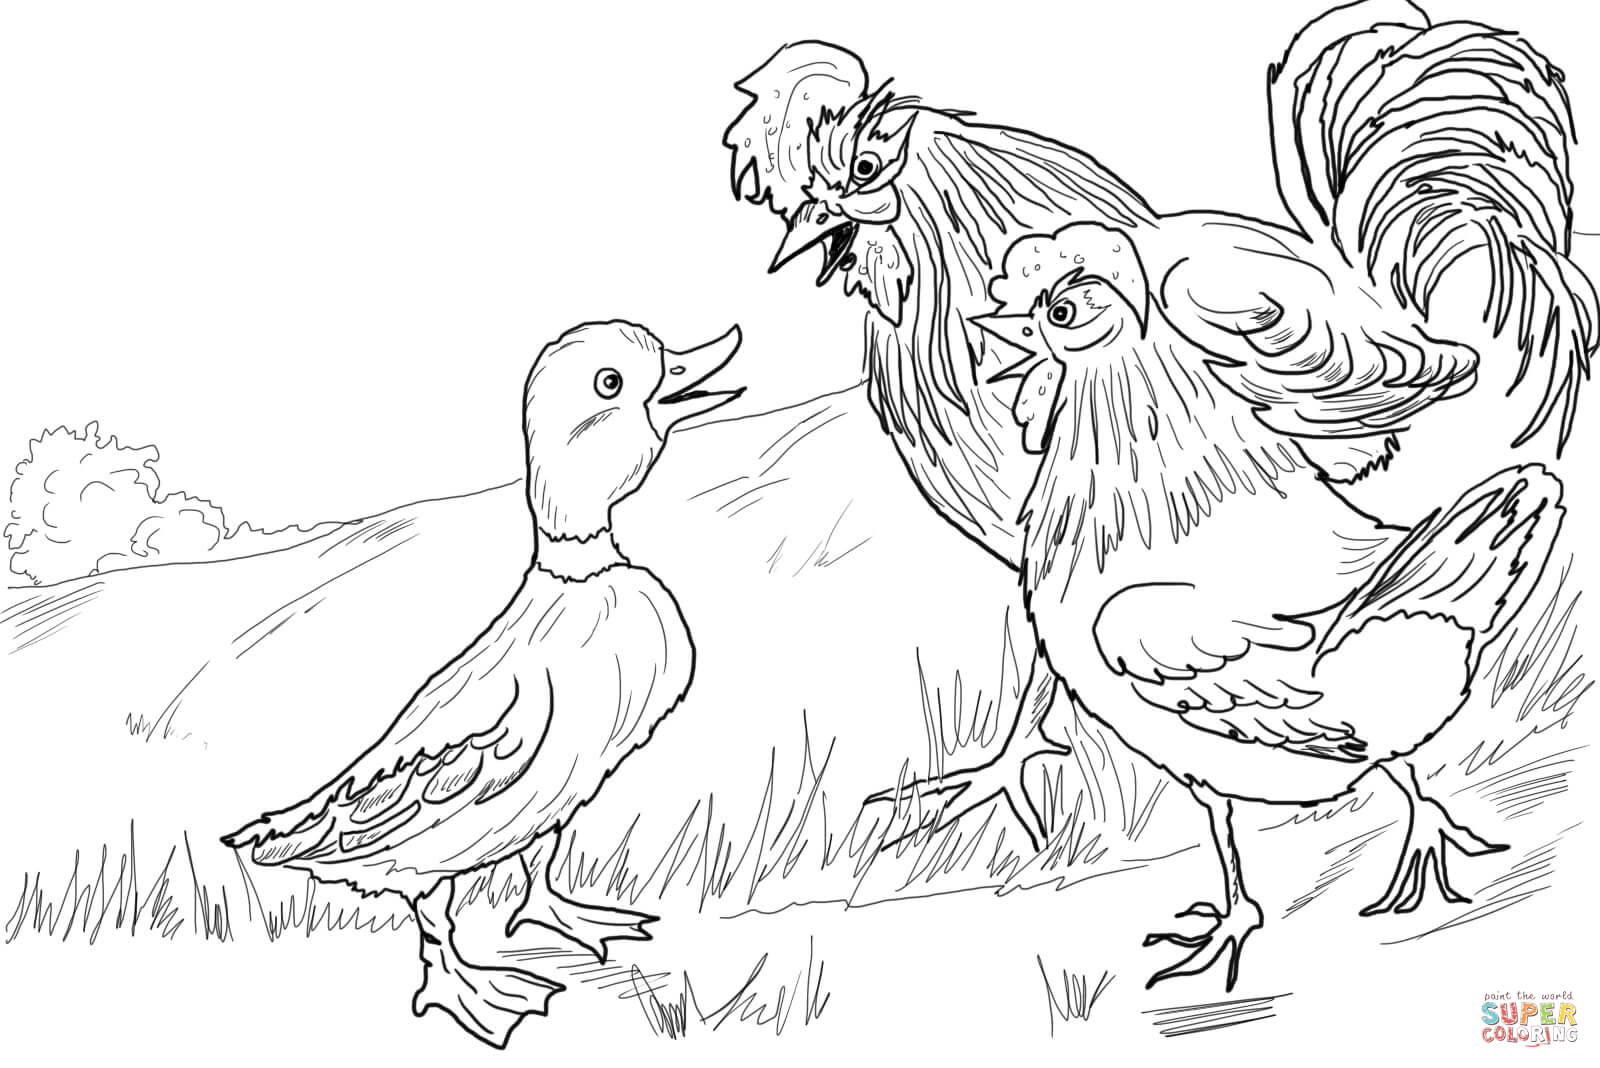 Panic Spreads From Lucky Ducky Coloring Page